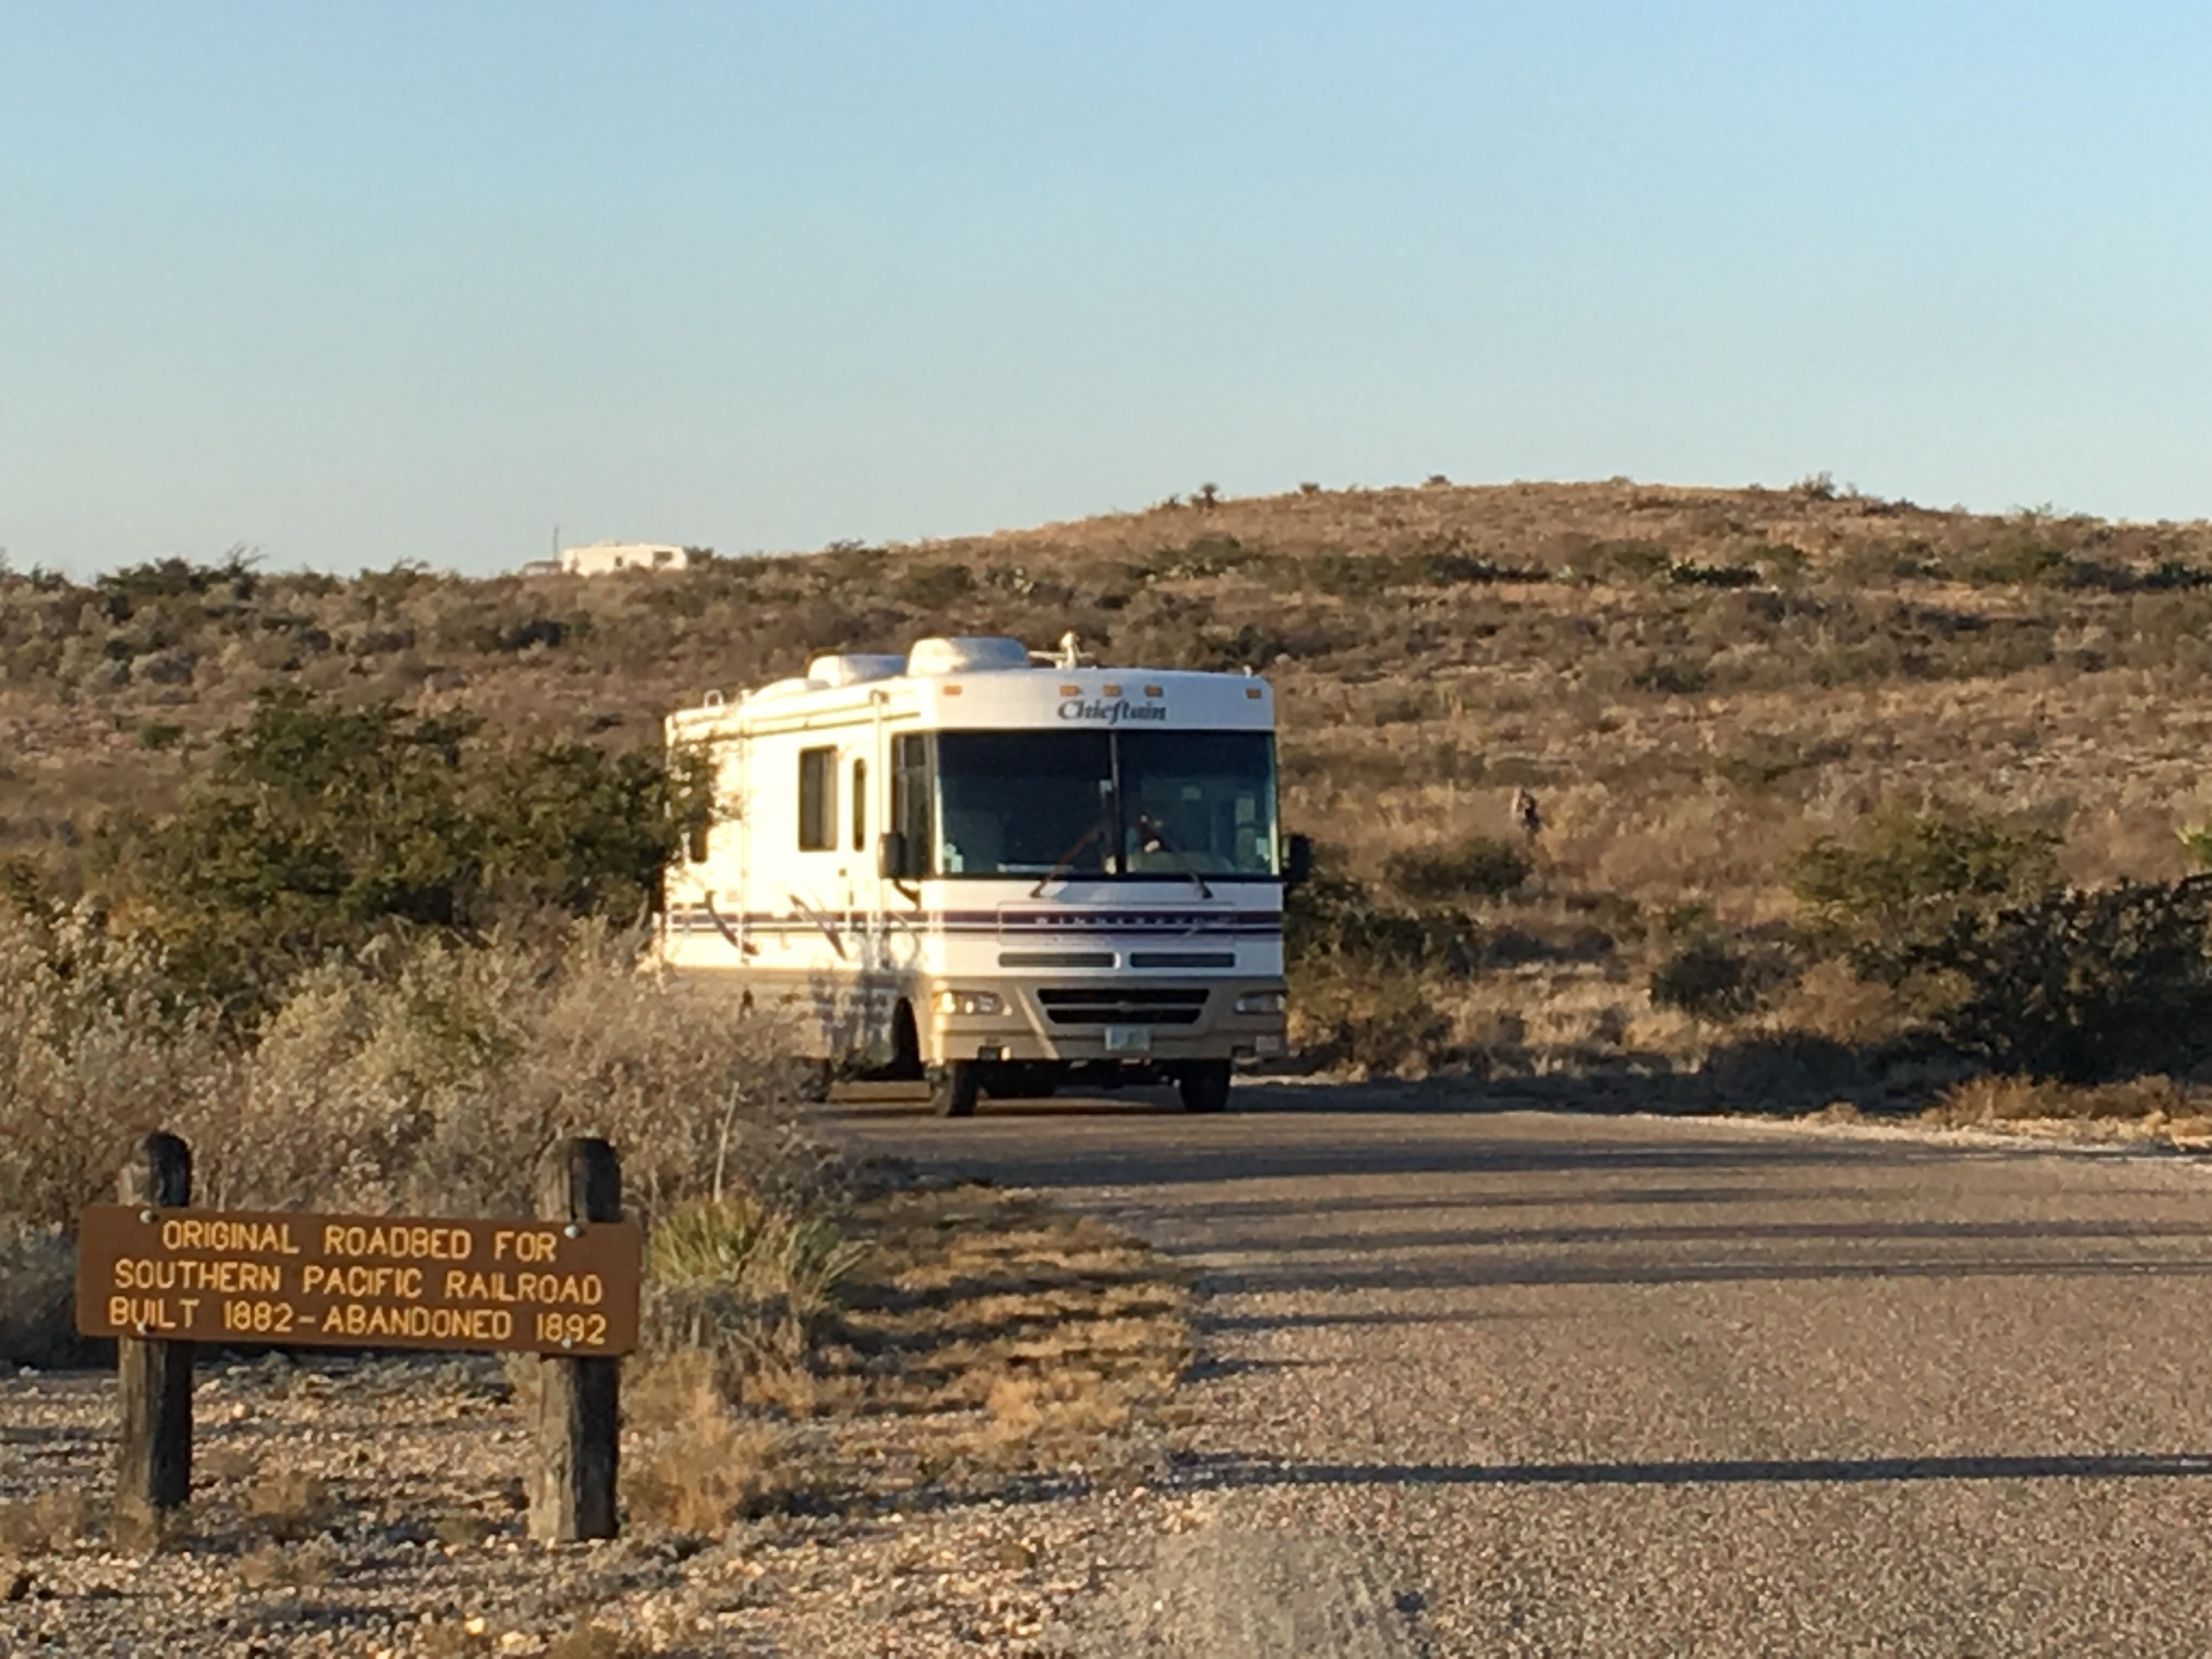 Early this morning we left Seminole Canyon and headed west; our destination for tonight is Balmorhea State Park.